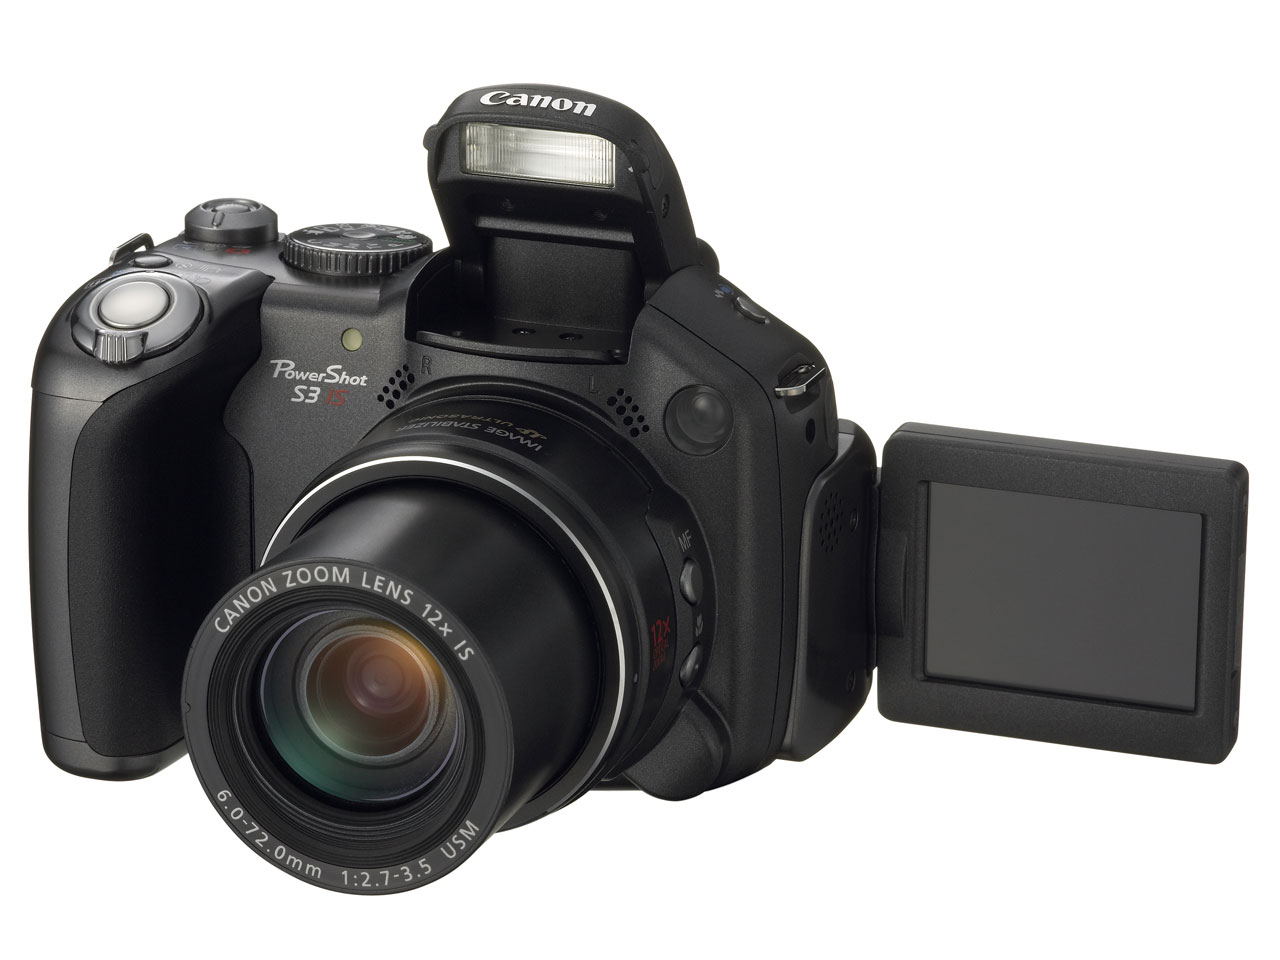 http://www.techwench.com/wp-content/uploads/2011/01/The-expensive-camera-that-has-to-be-justified5.jpg